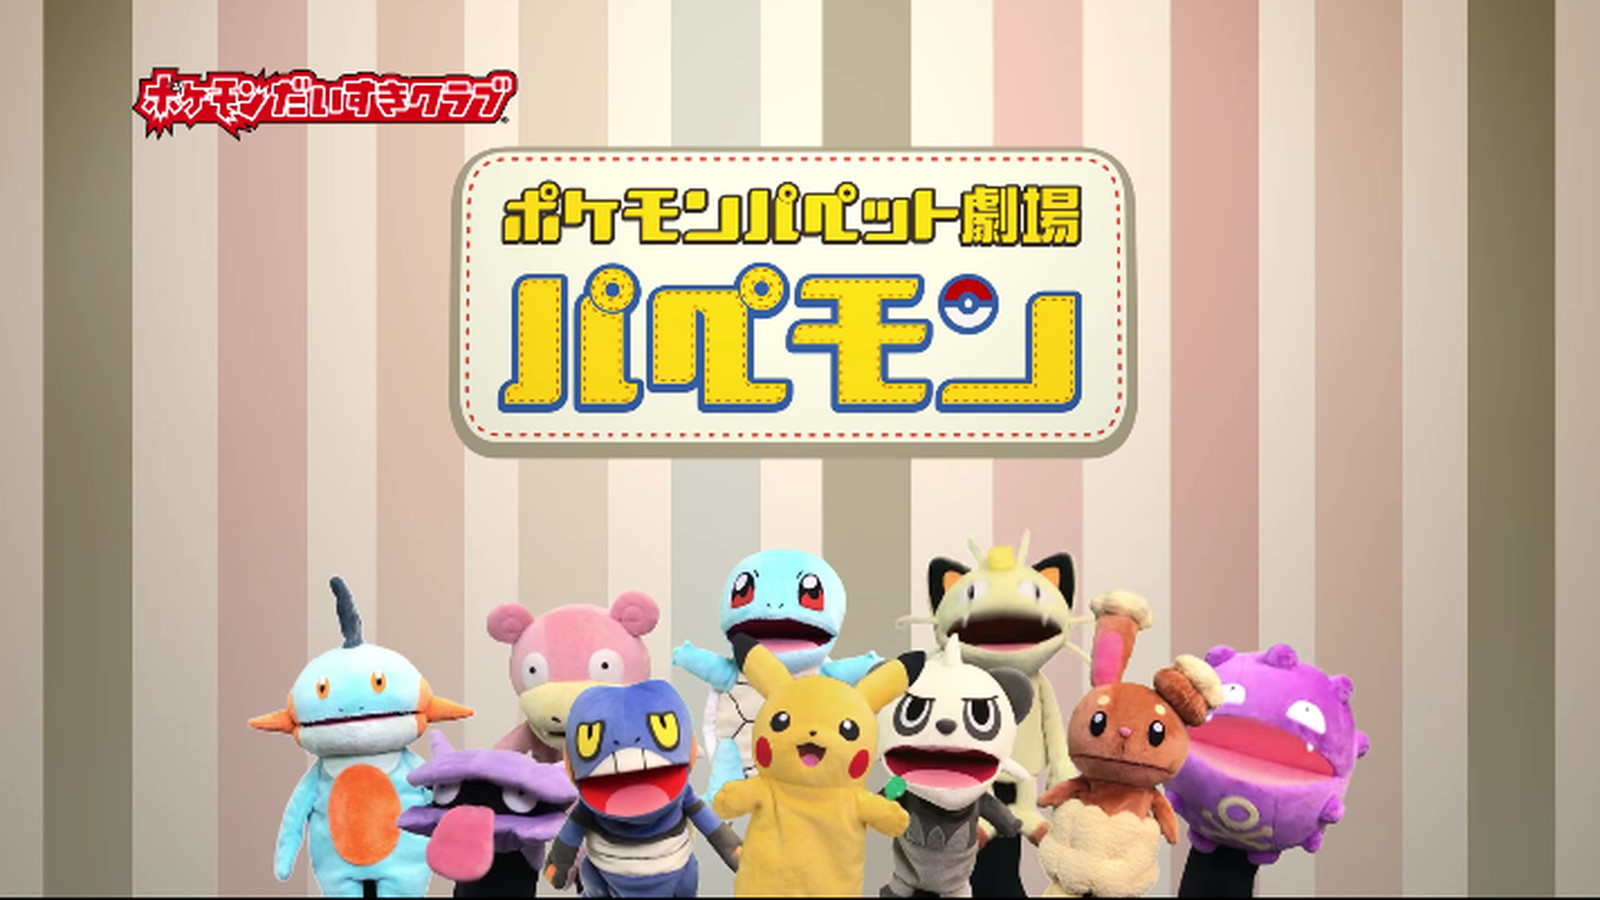 This Pokémon puppet show is strangely enthralling